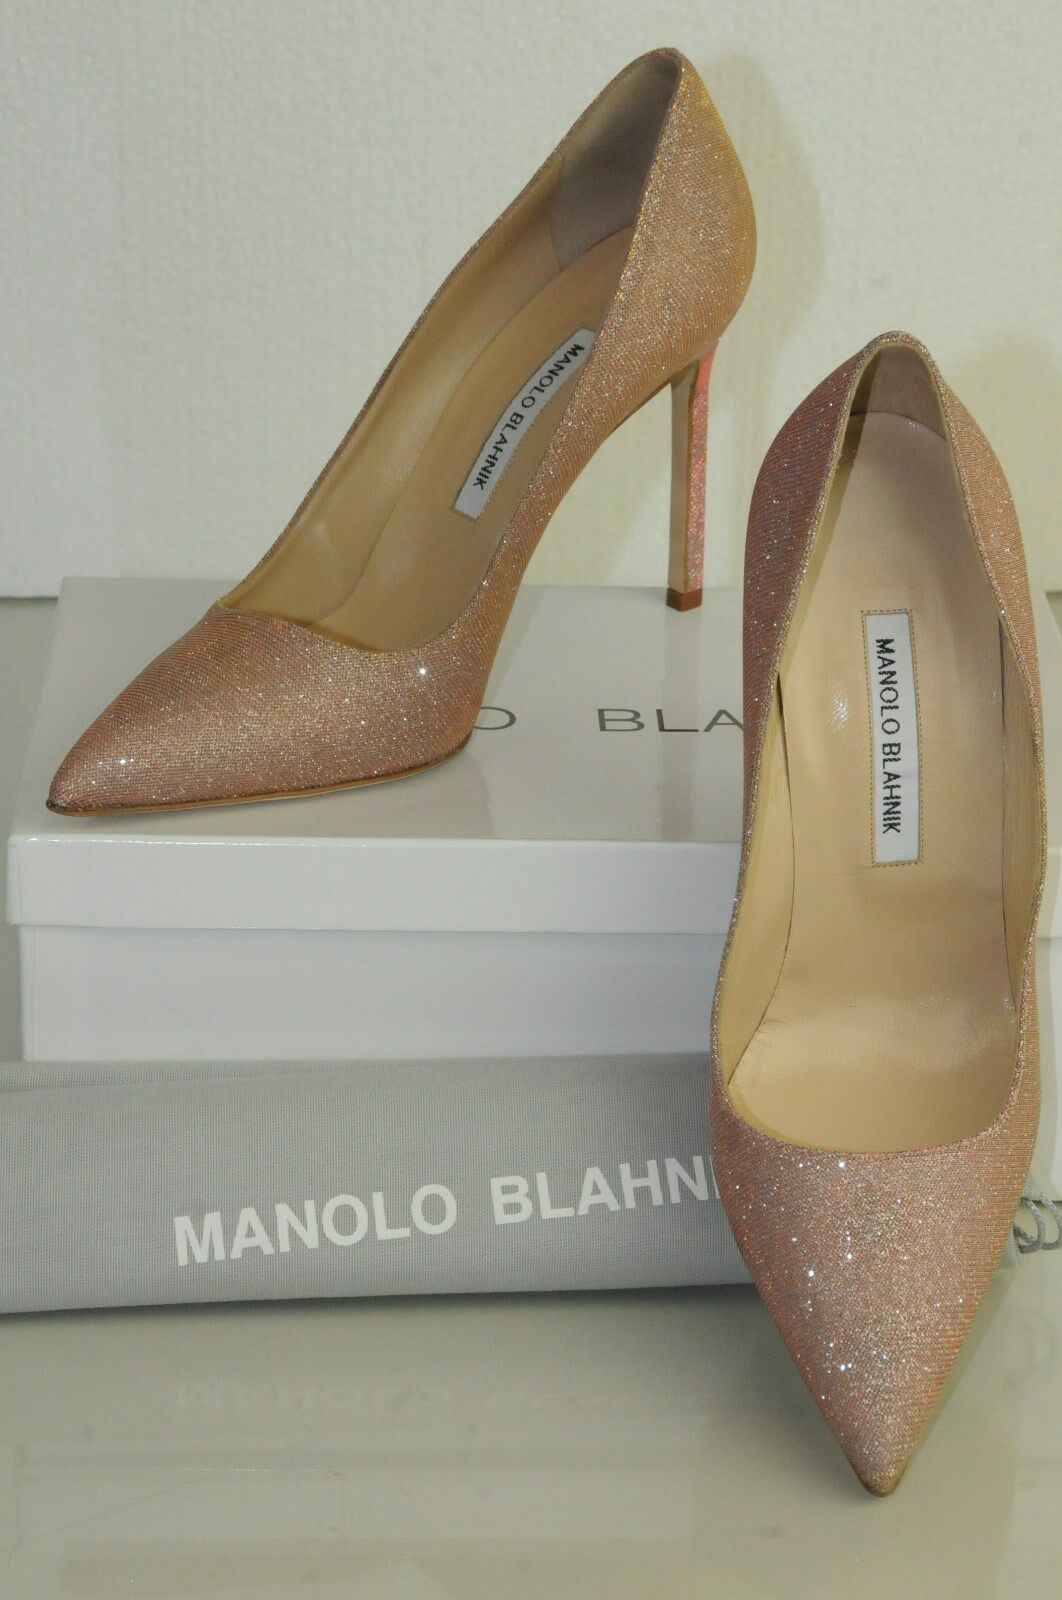 New Manolo Blahnik DAGGA Nude Pink Silver gold Sparkle shoes shoes shoes Pumps BB 40.5 41.5 ca1841